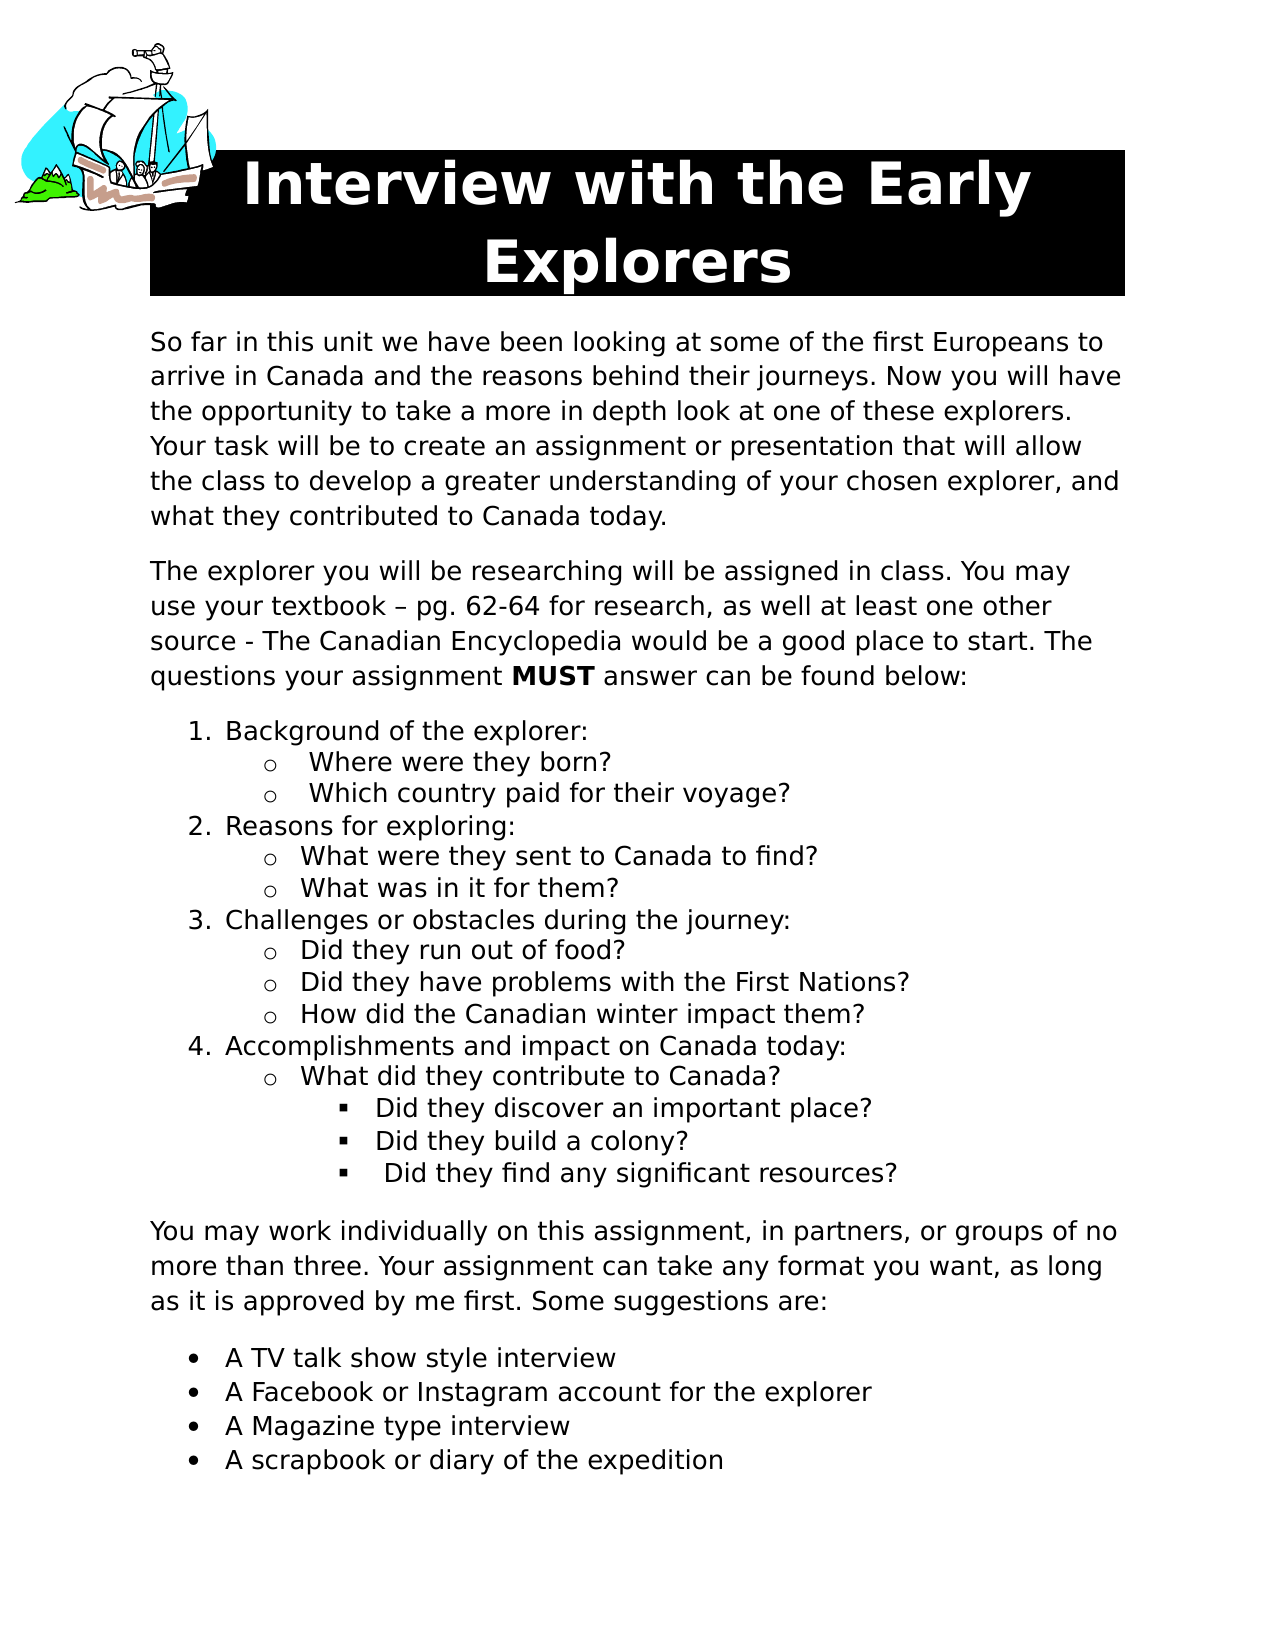 Interview with the Early Explorers Assignment Resource Preview